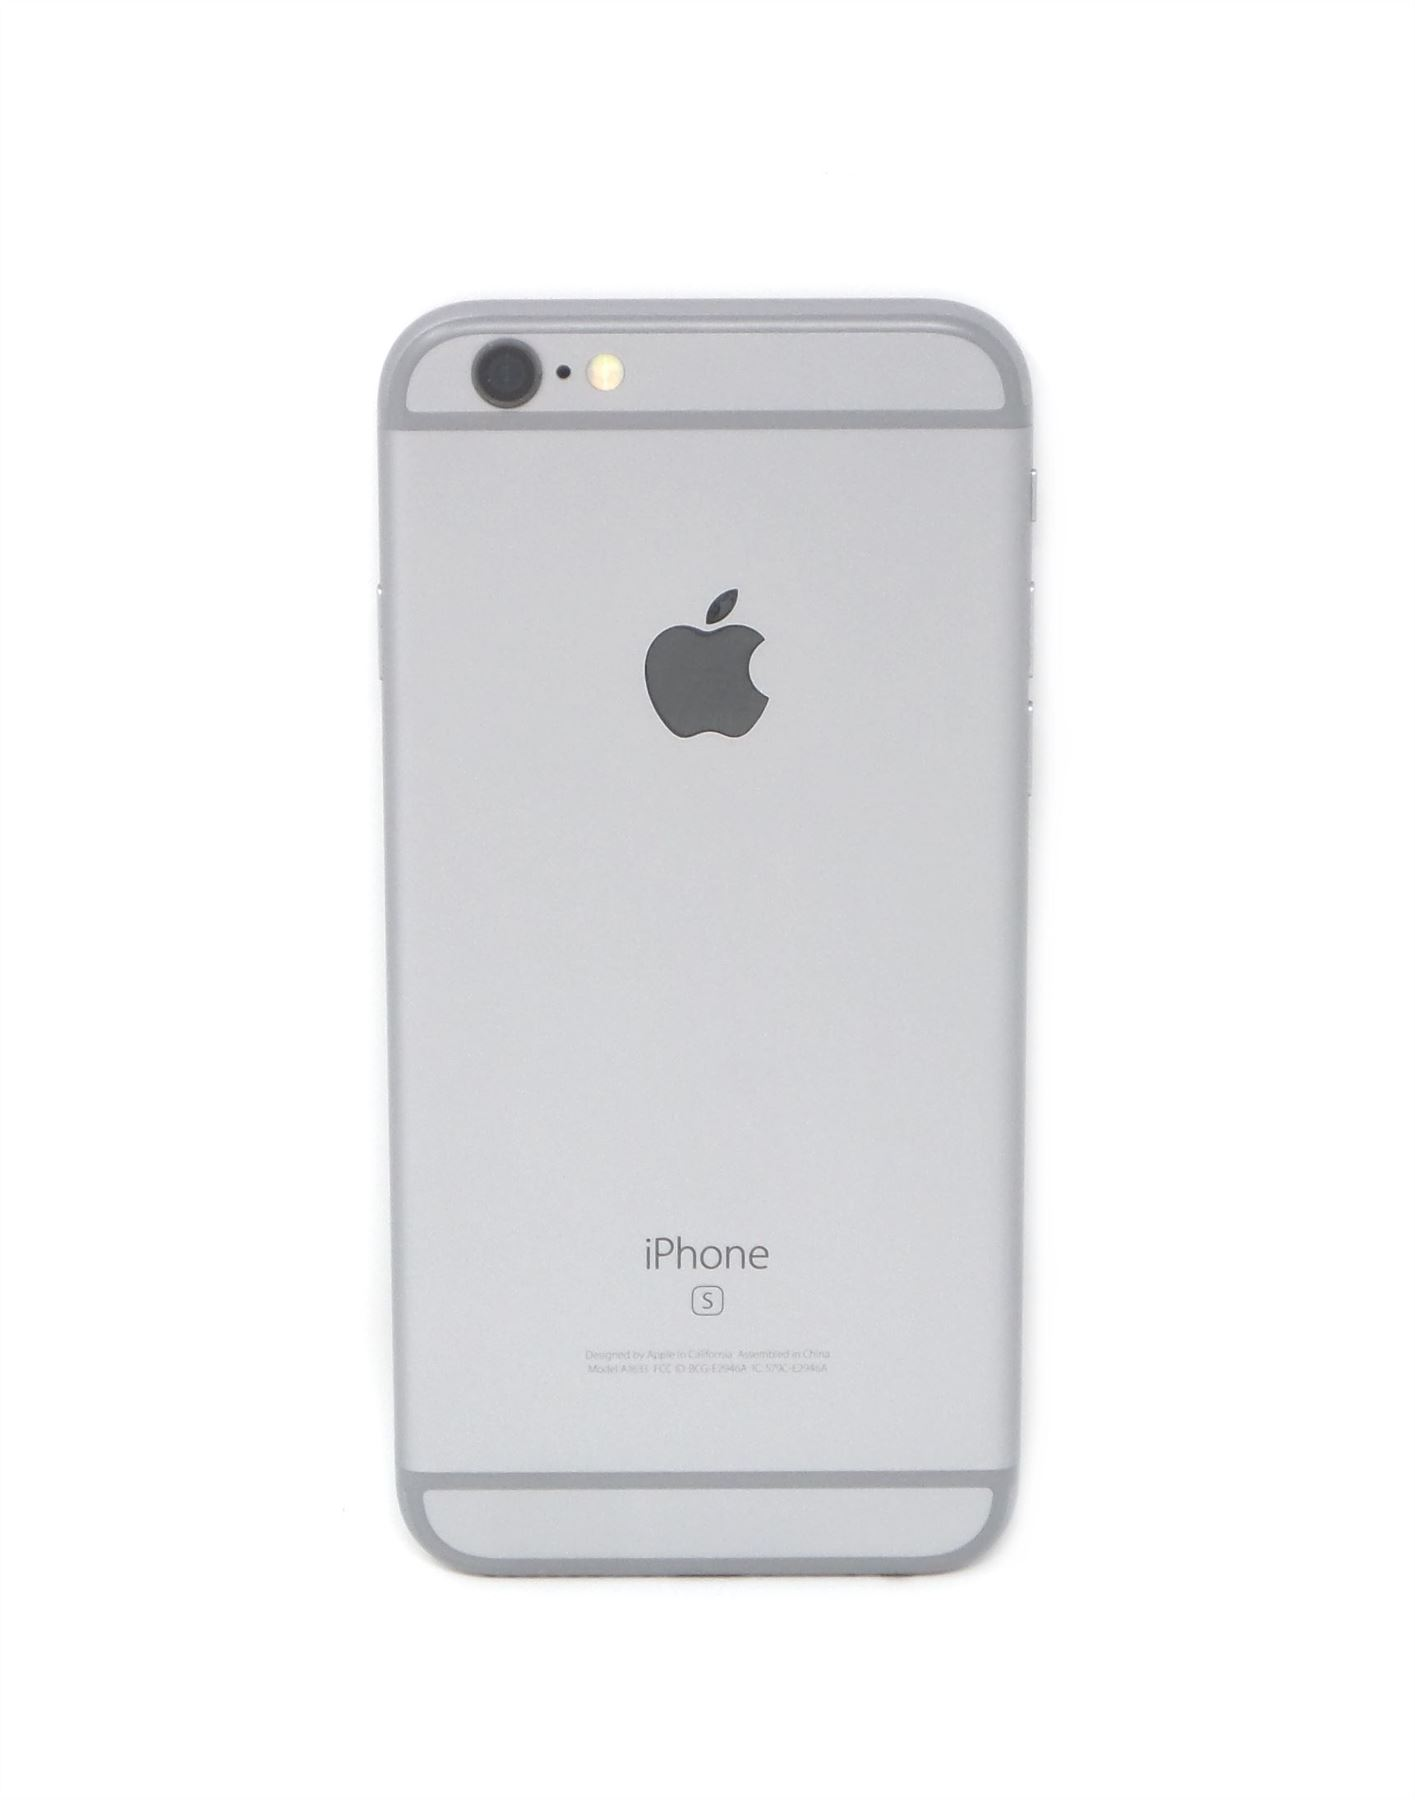 Apple-iPhone-6s-Carrier-Options-AT-amp-T-T-Mobile-Verizon-Unlocked-16-64-128GB-New thumbnail 11